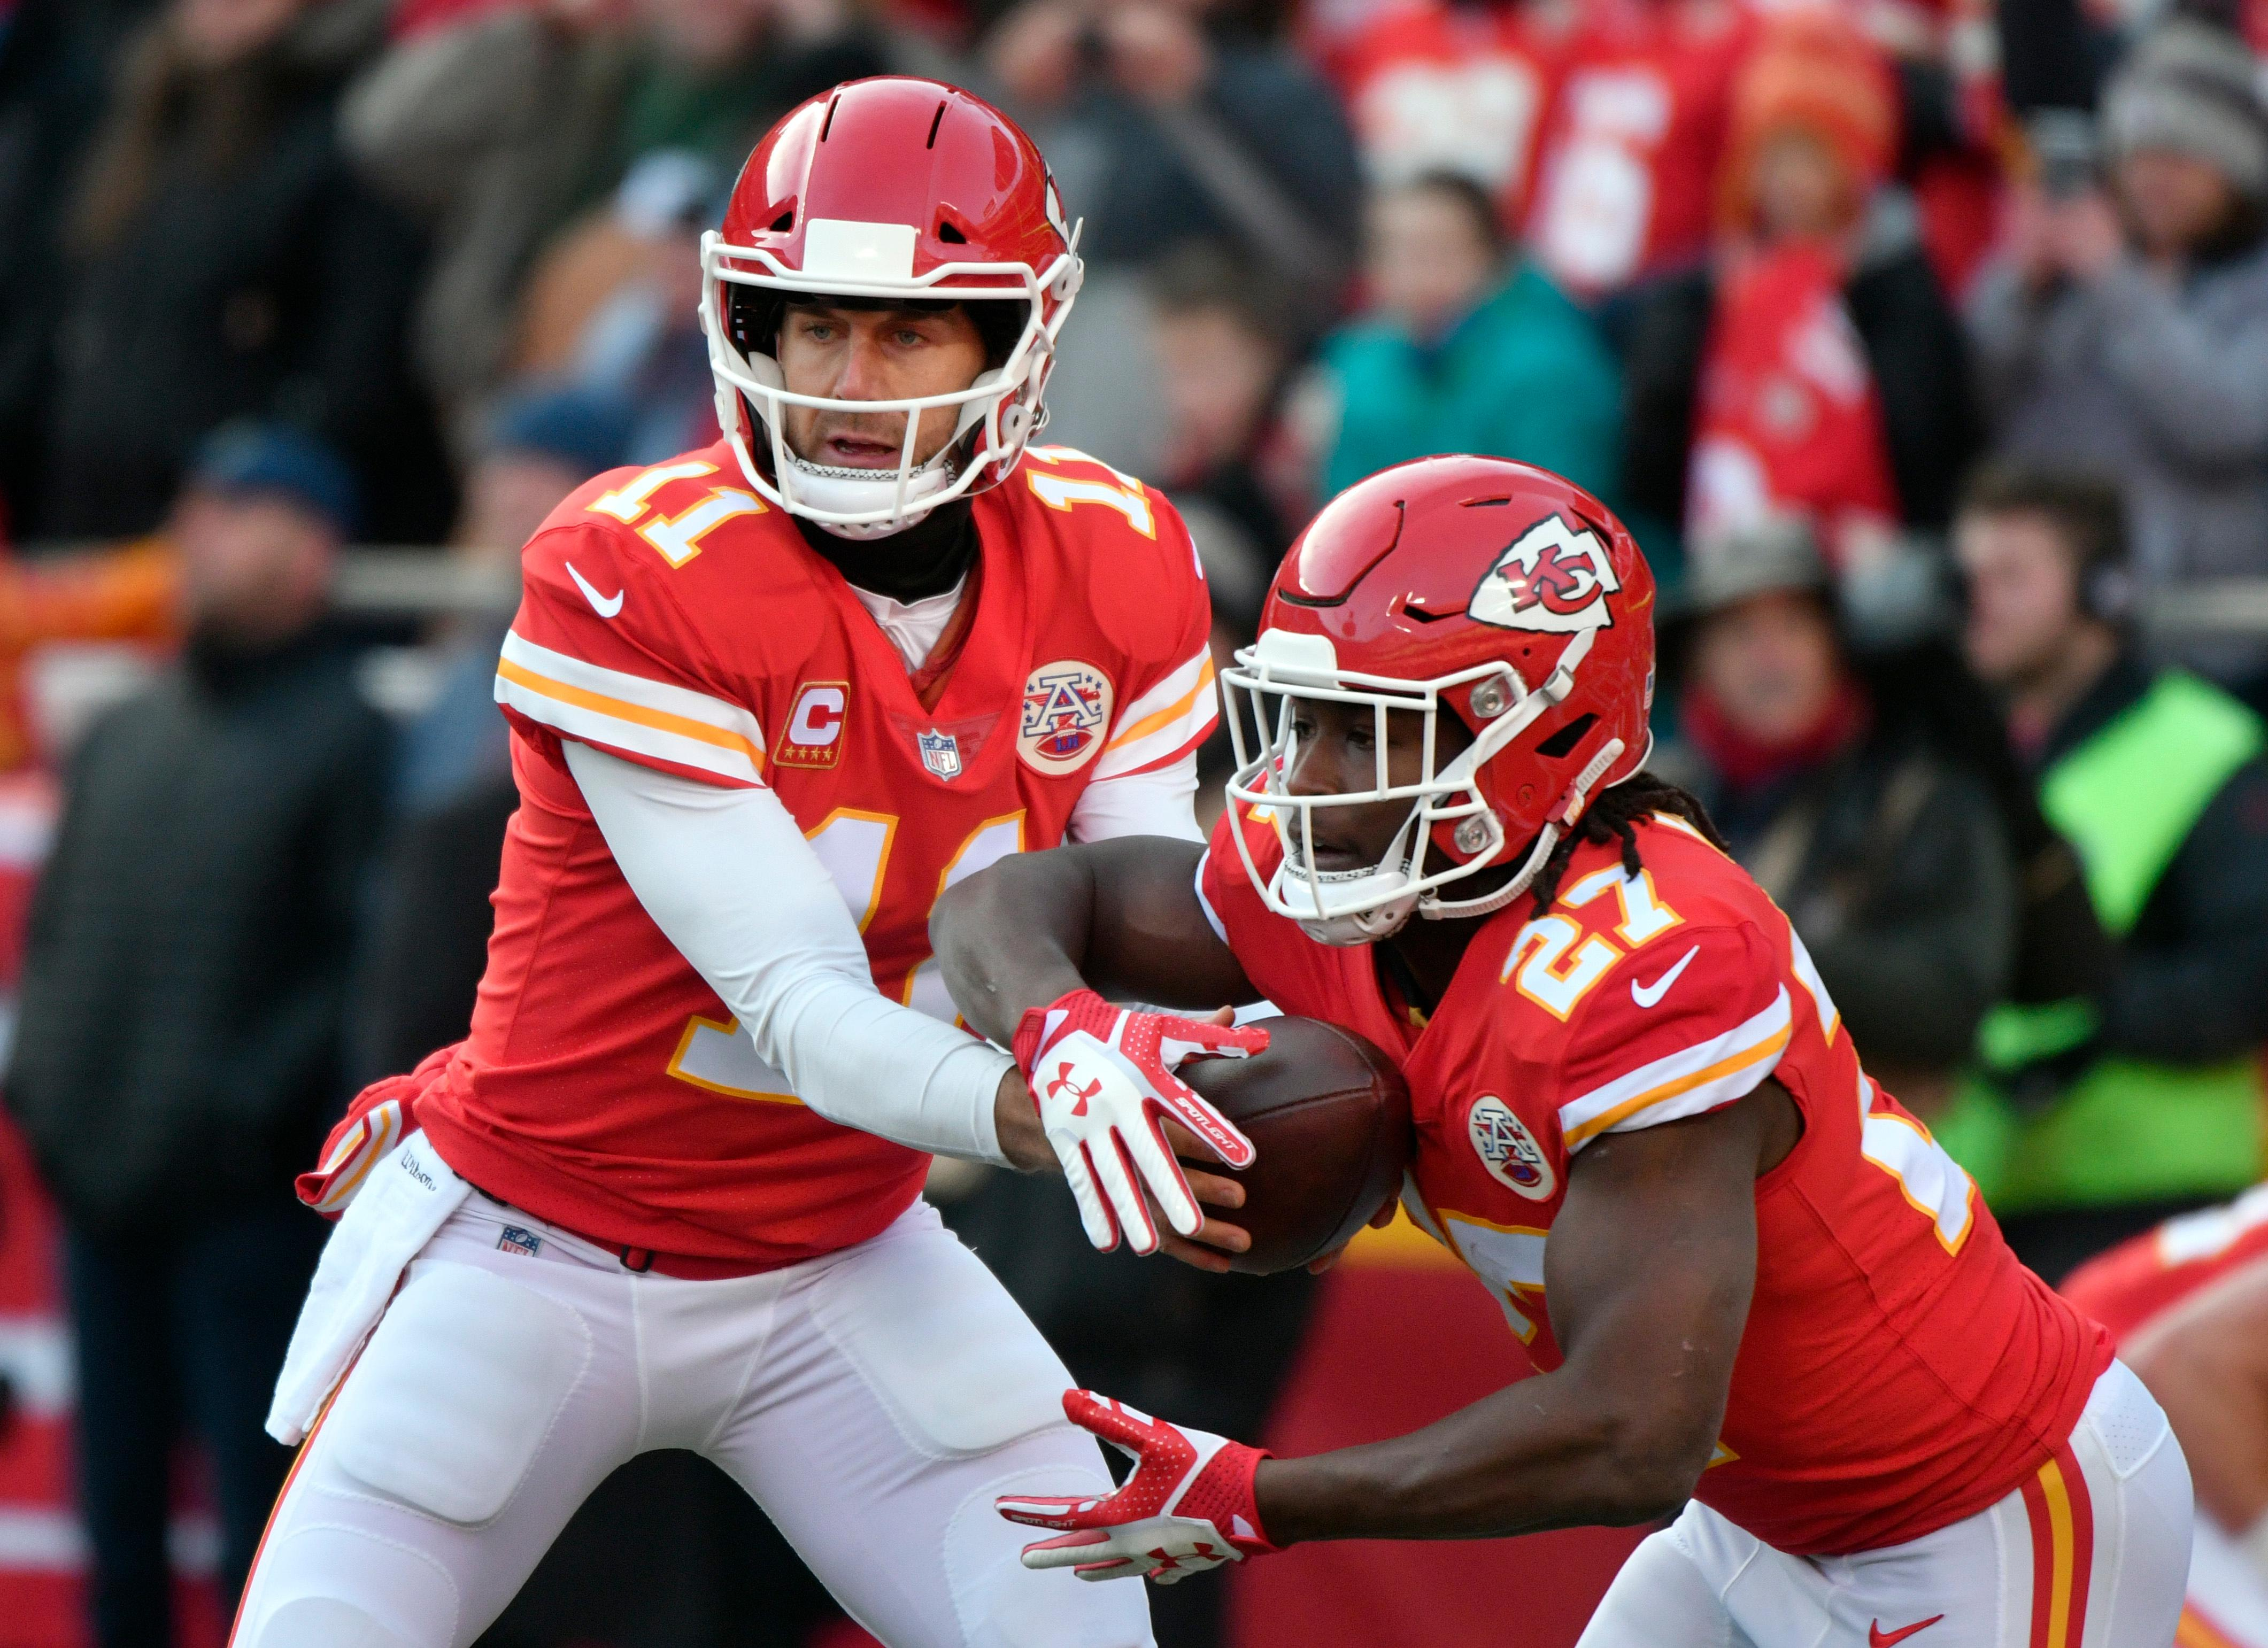 Kansas City Chiefs quarterback Alex Smith (11) hands the ball off to running back Kareem Hunt (27) during warmups before an NFL wild-card playoff football game against the Tennessee Titans, in Kansas City, Mo., Saturday, Jan. 6, 2018. (AP Photo/Ed Zurga)